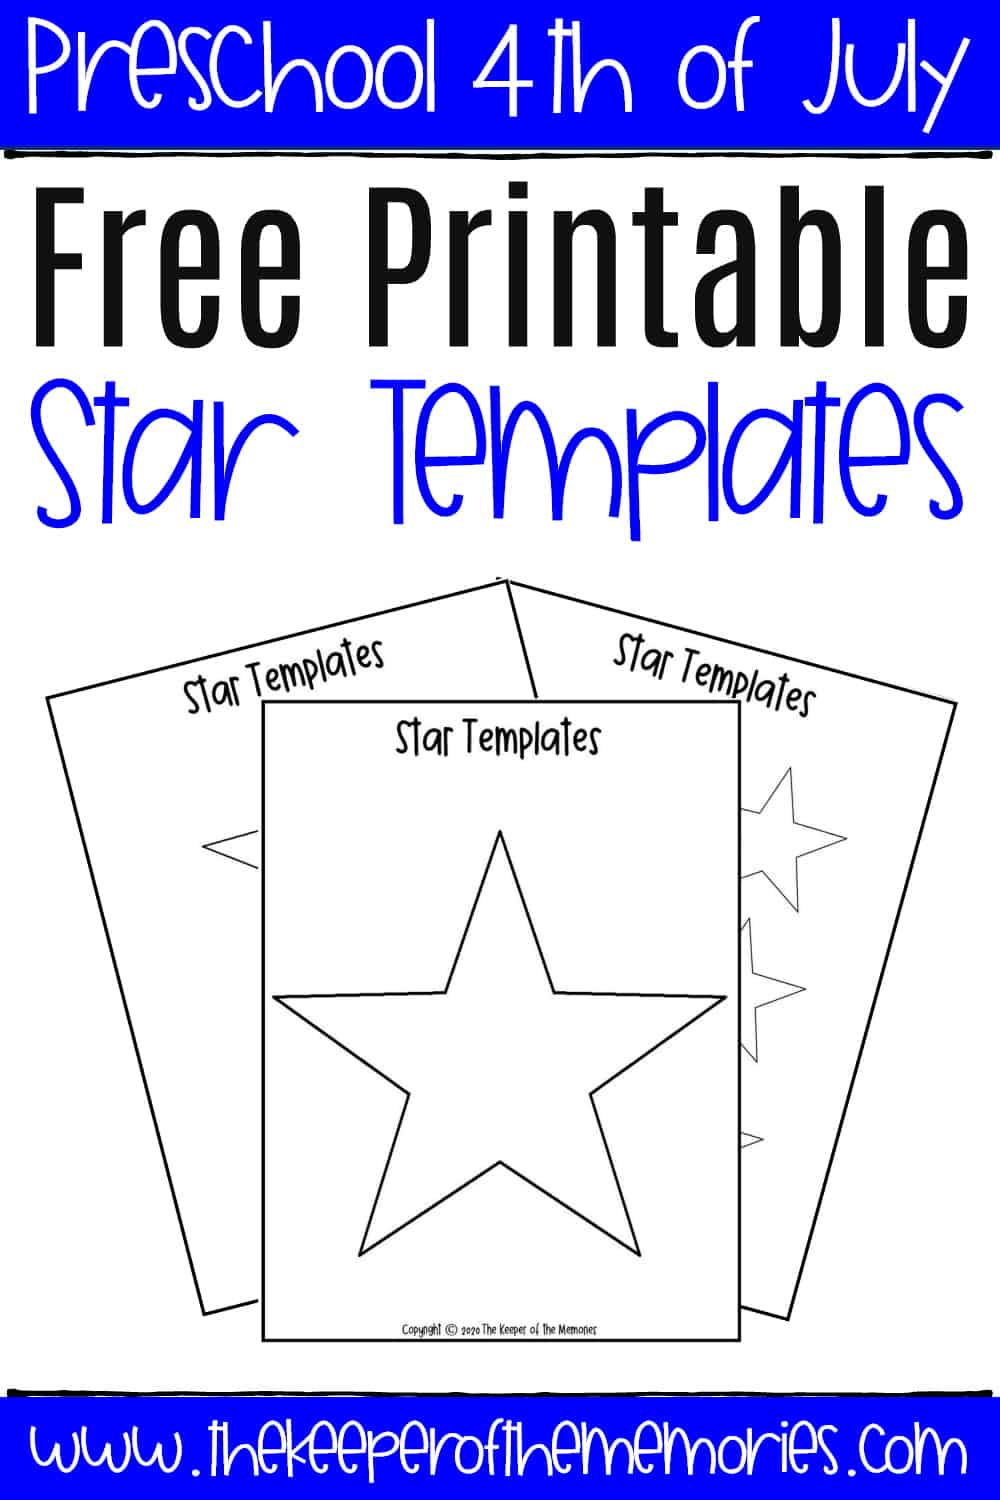 It's just a graphic of Star Stencils Printable in traceable